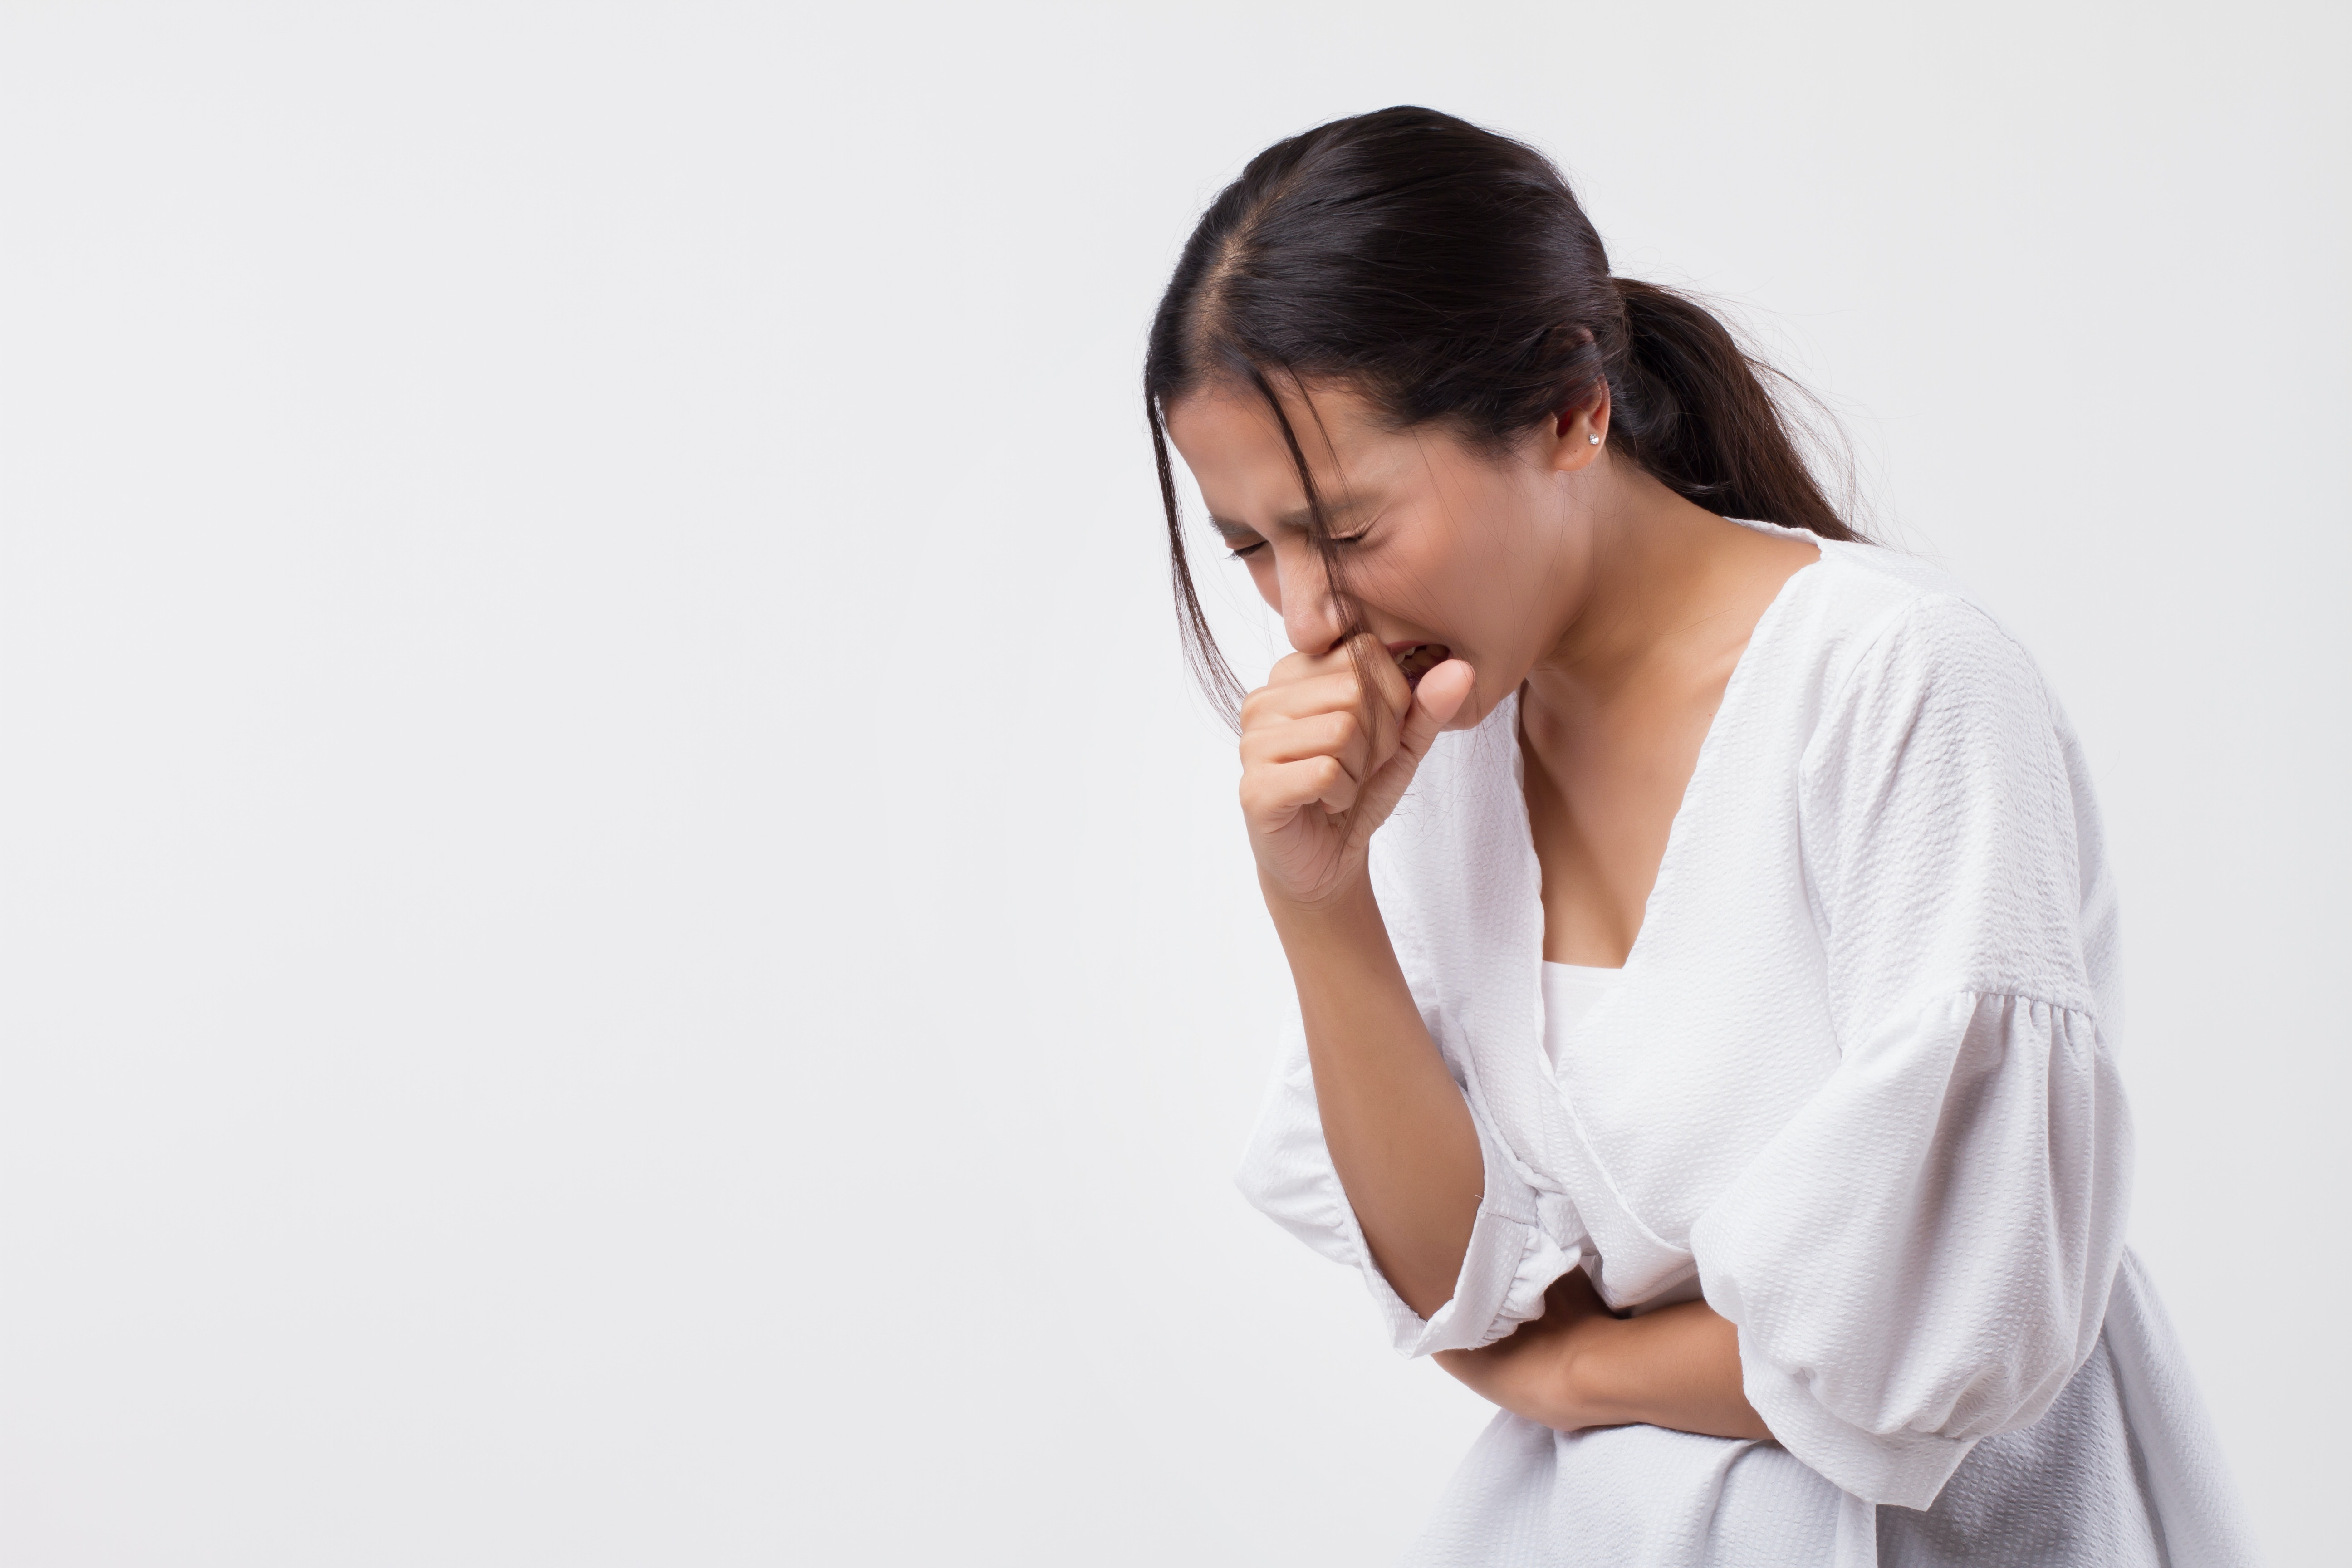 An image depicting a person suffering from throat clearing symptoms